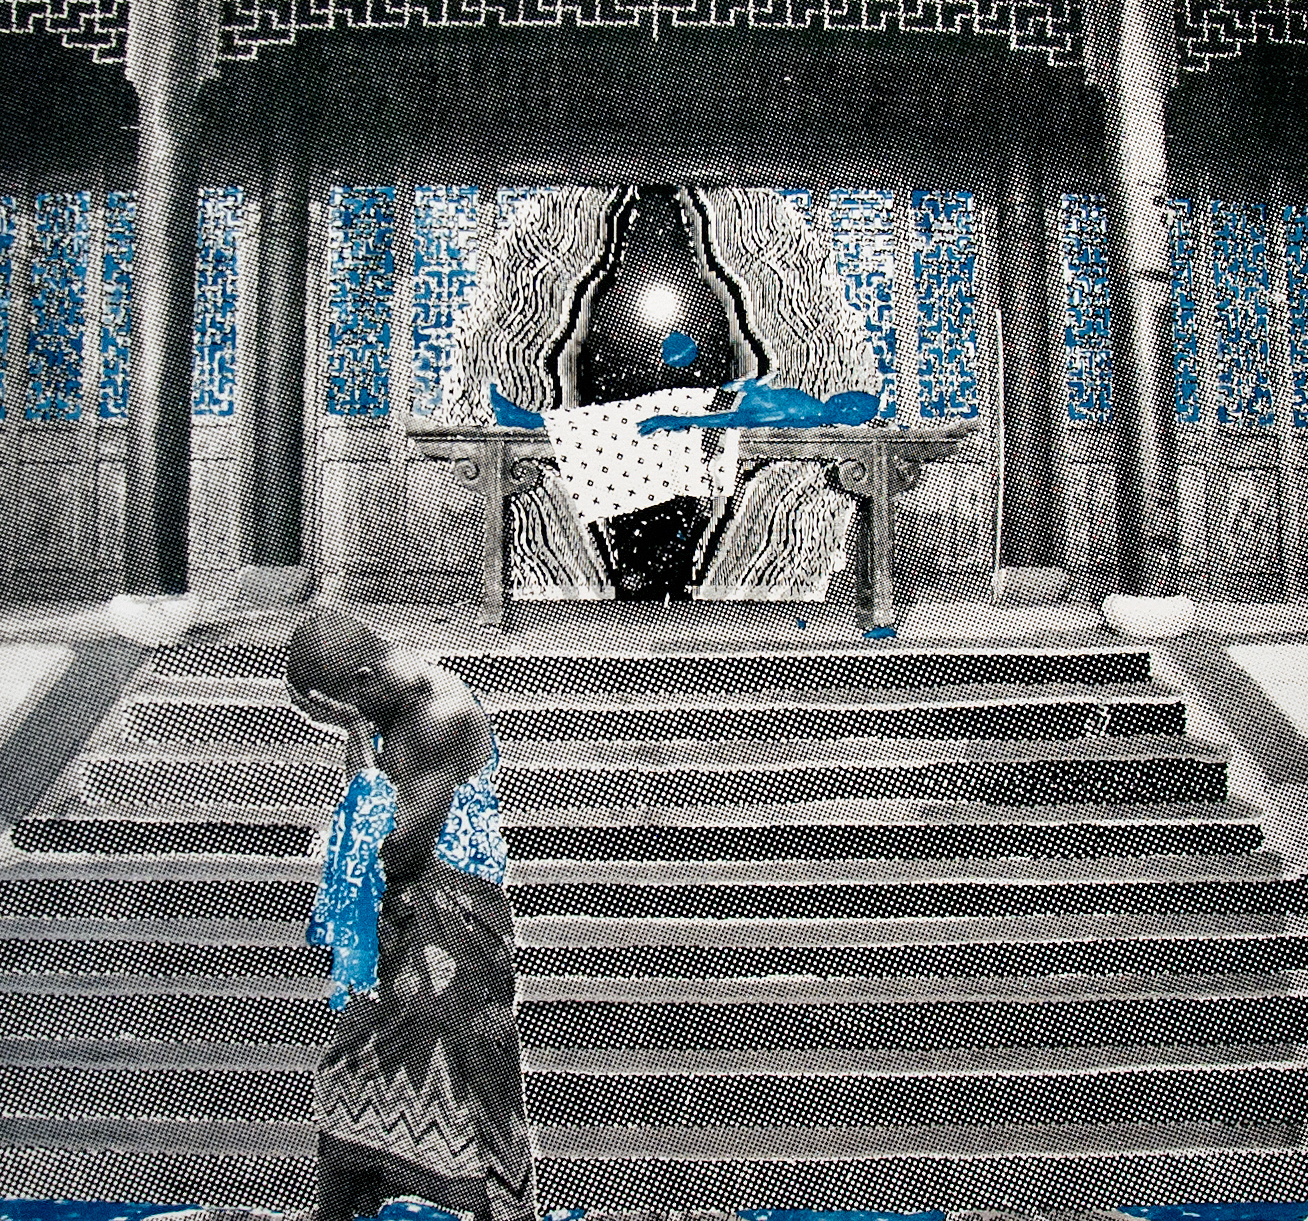 Ivan Forde,  Death of Enkidu , 2016  Silkscreen and cyanotype on paper, 16 x 18 inches (image size), 22 x 30 inches (paper size), edition of 3   Inquire